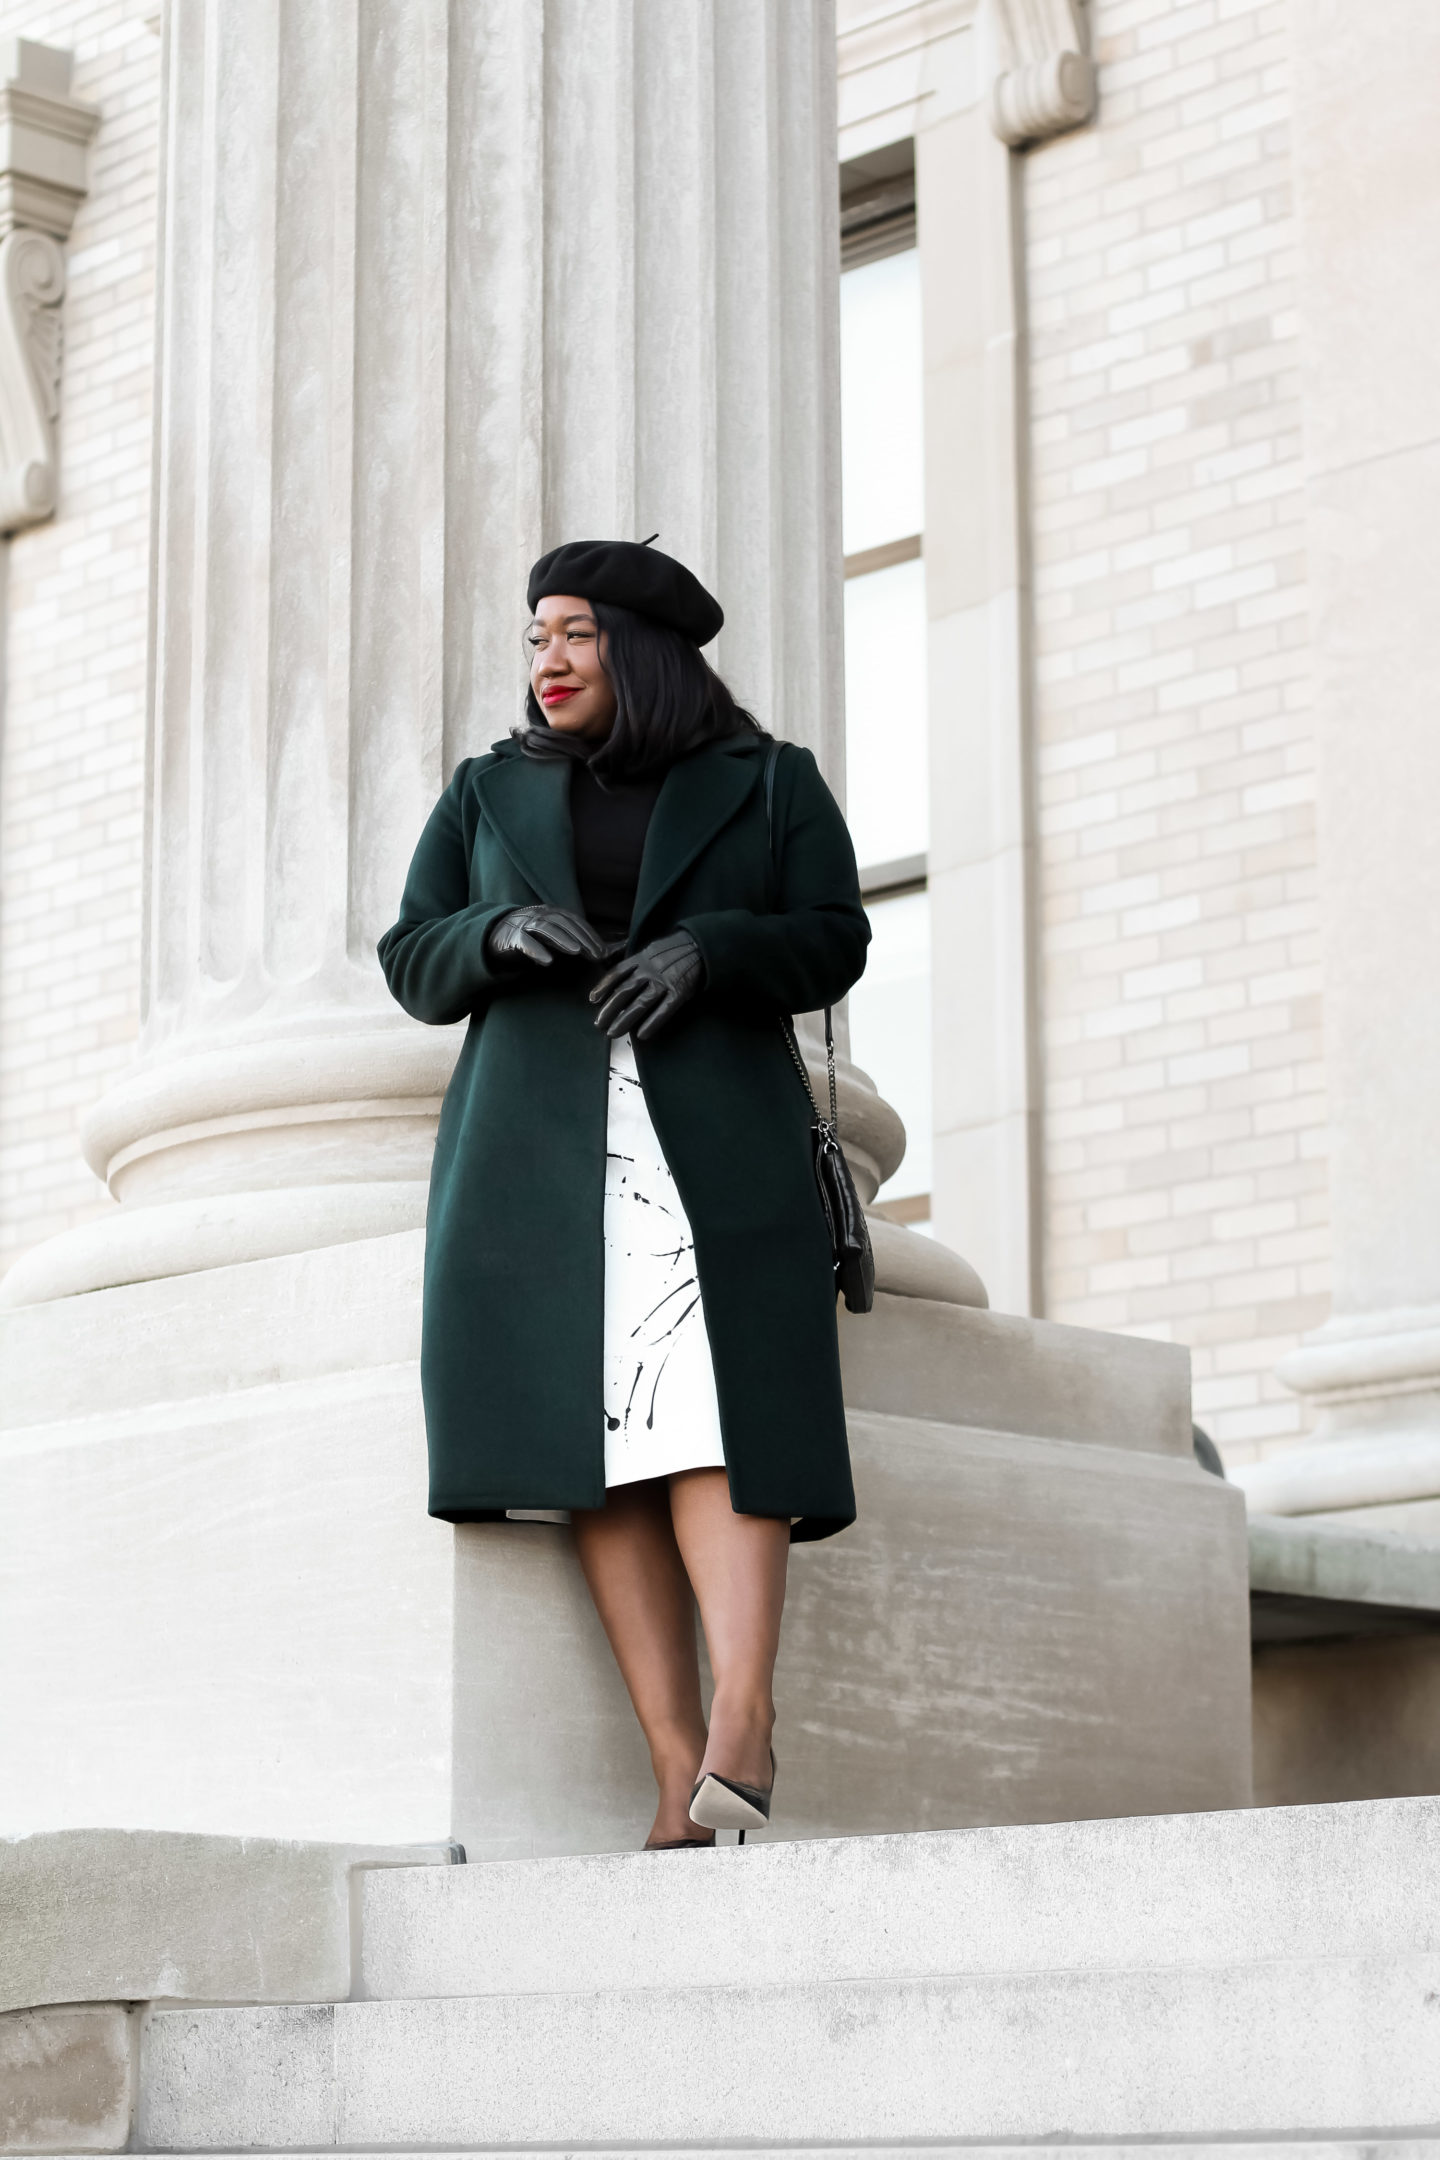 Plus Size Fashion for Women • Plus Size Green Coat Work Outfit Idea • Green Light | Shapely Chic Sheri